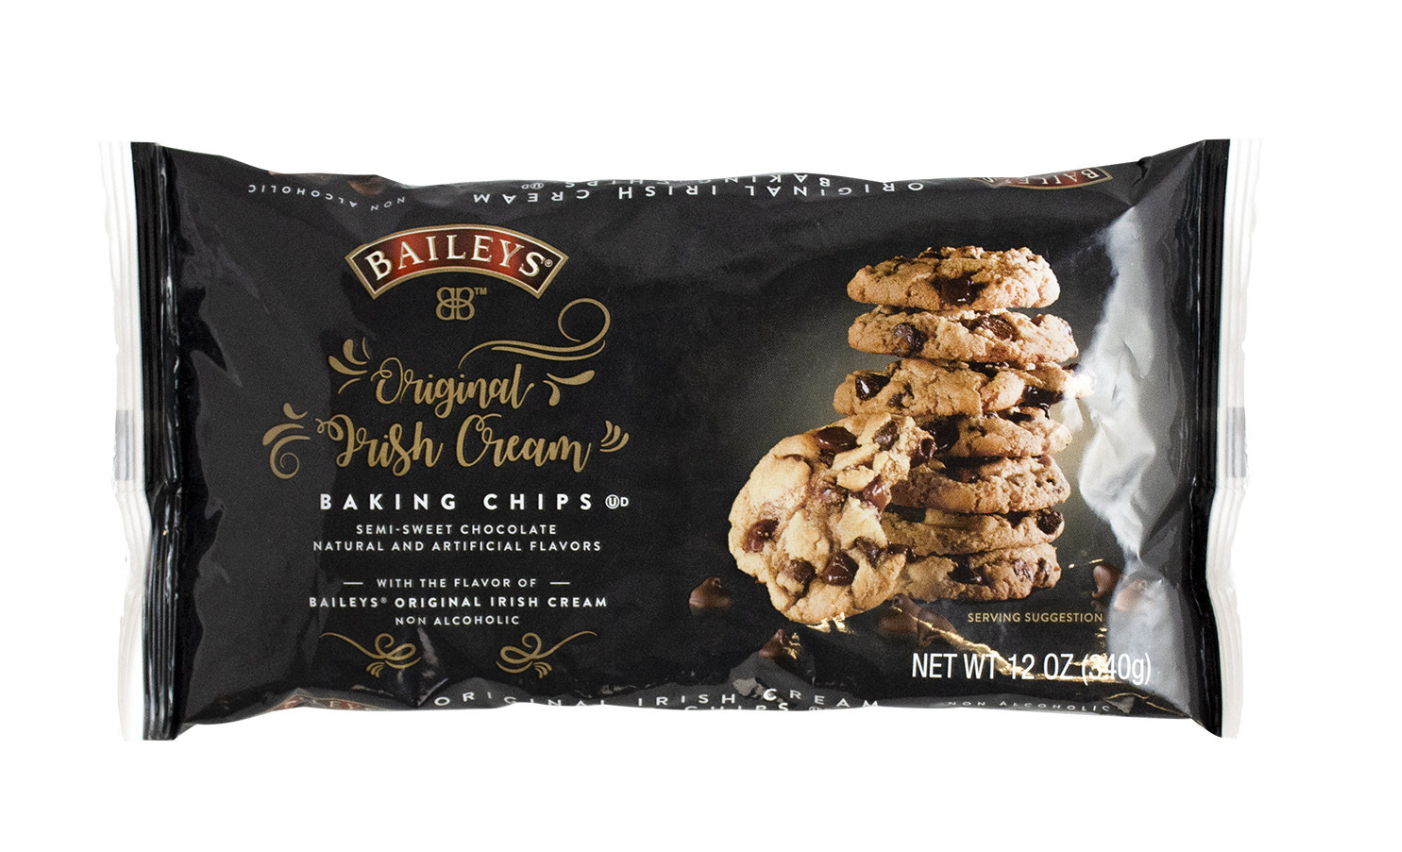 Bailey's Just Released Baking Chips And We Are Freaking Out